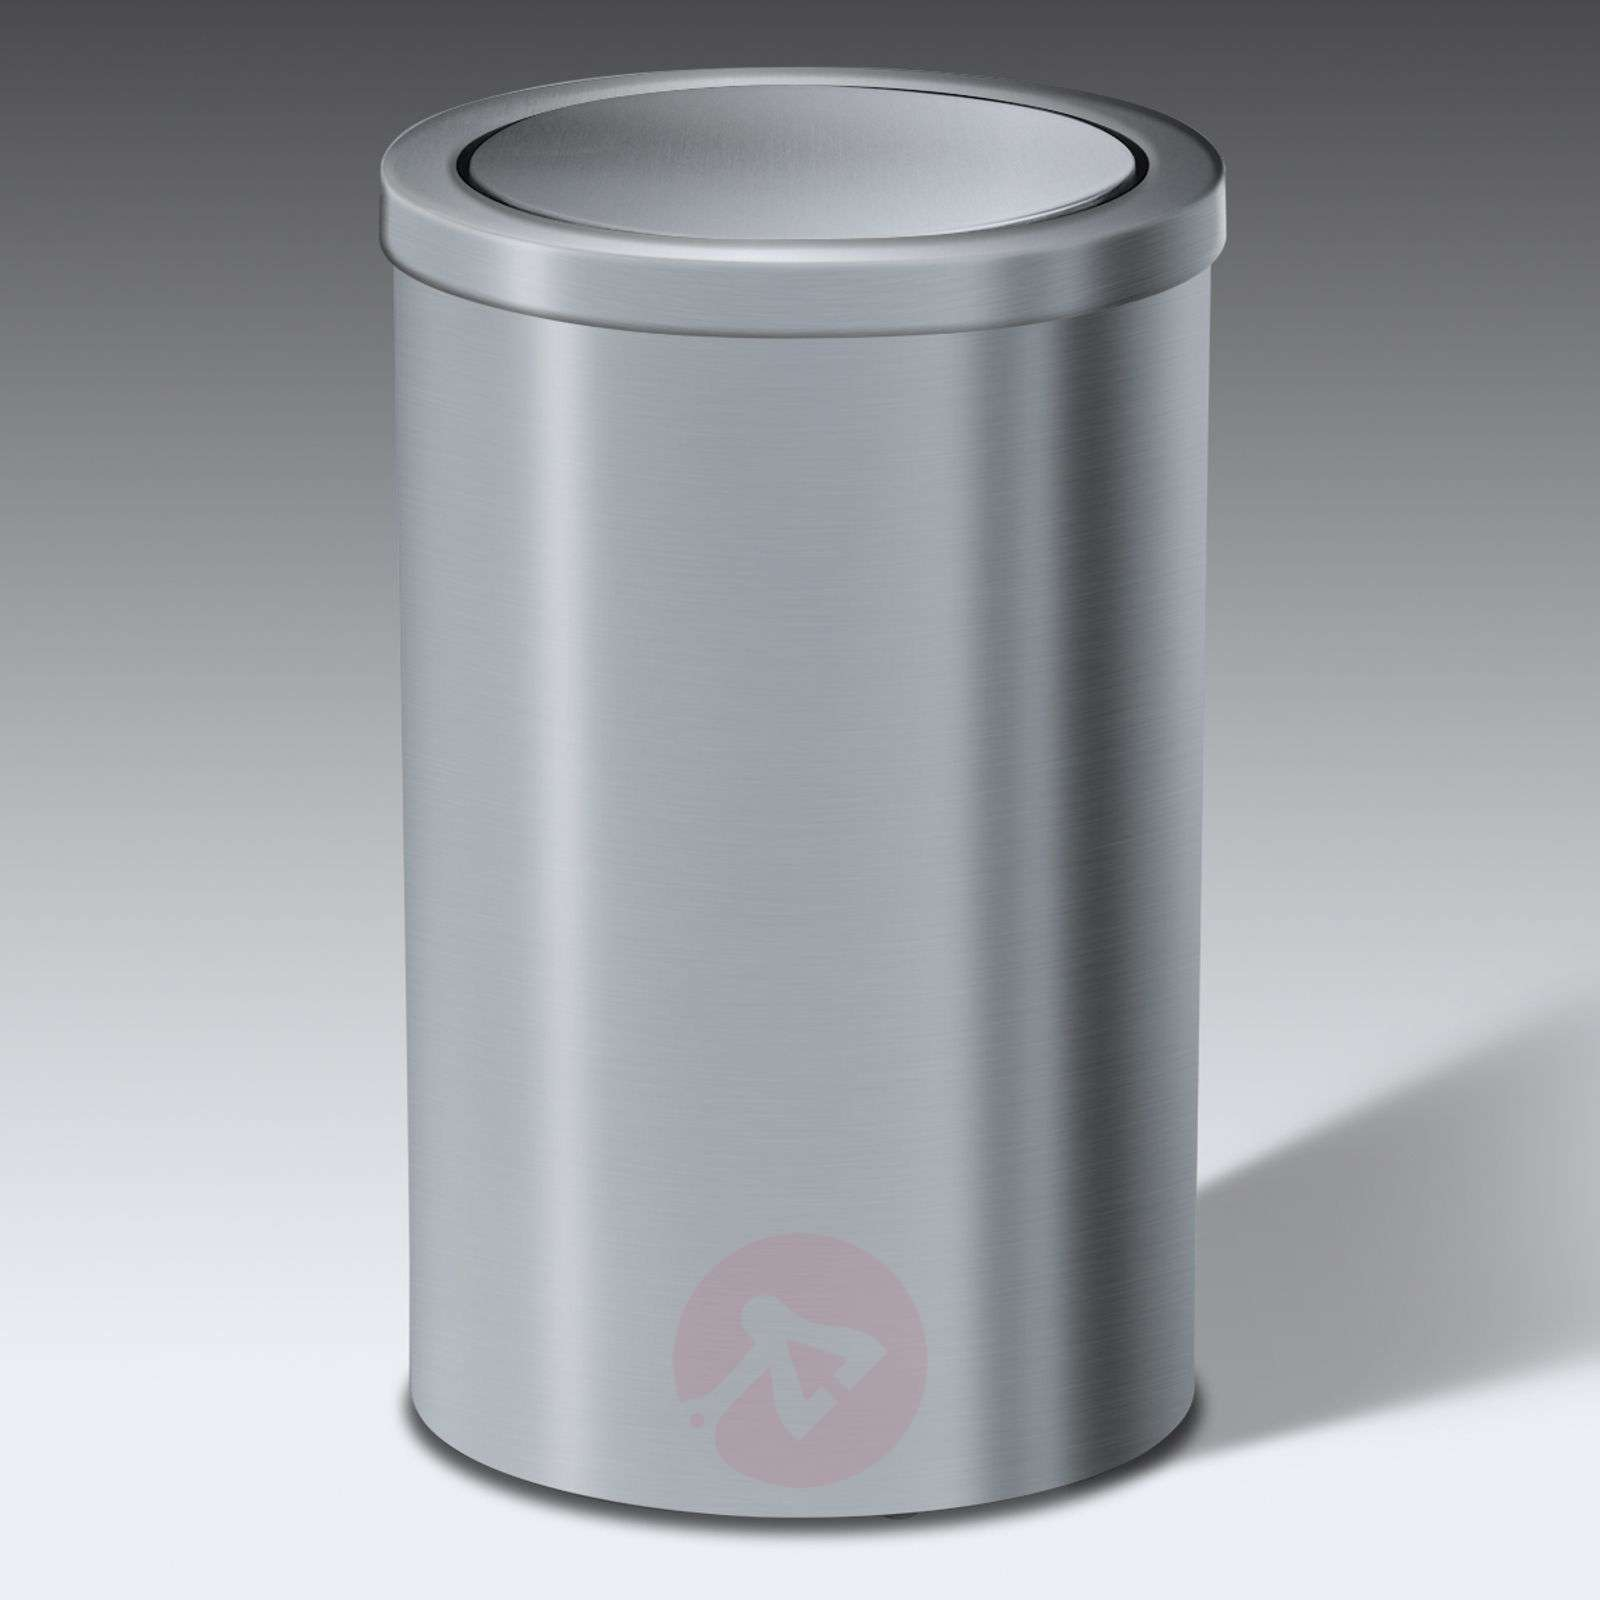 BIN waste paper container, height 32cm-2504386X-01